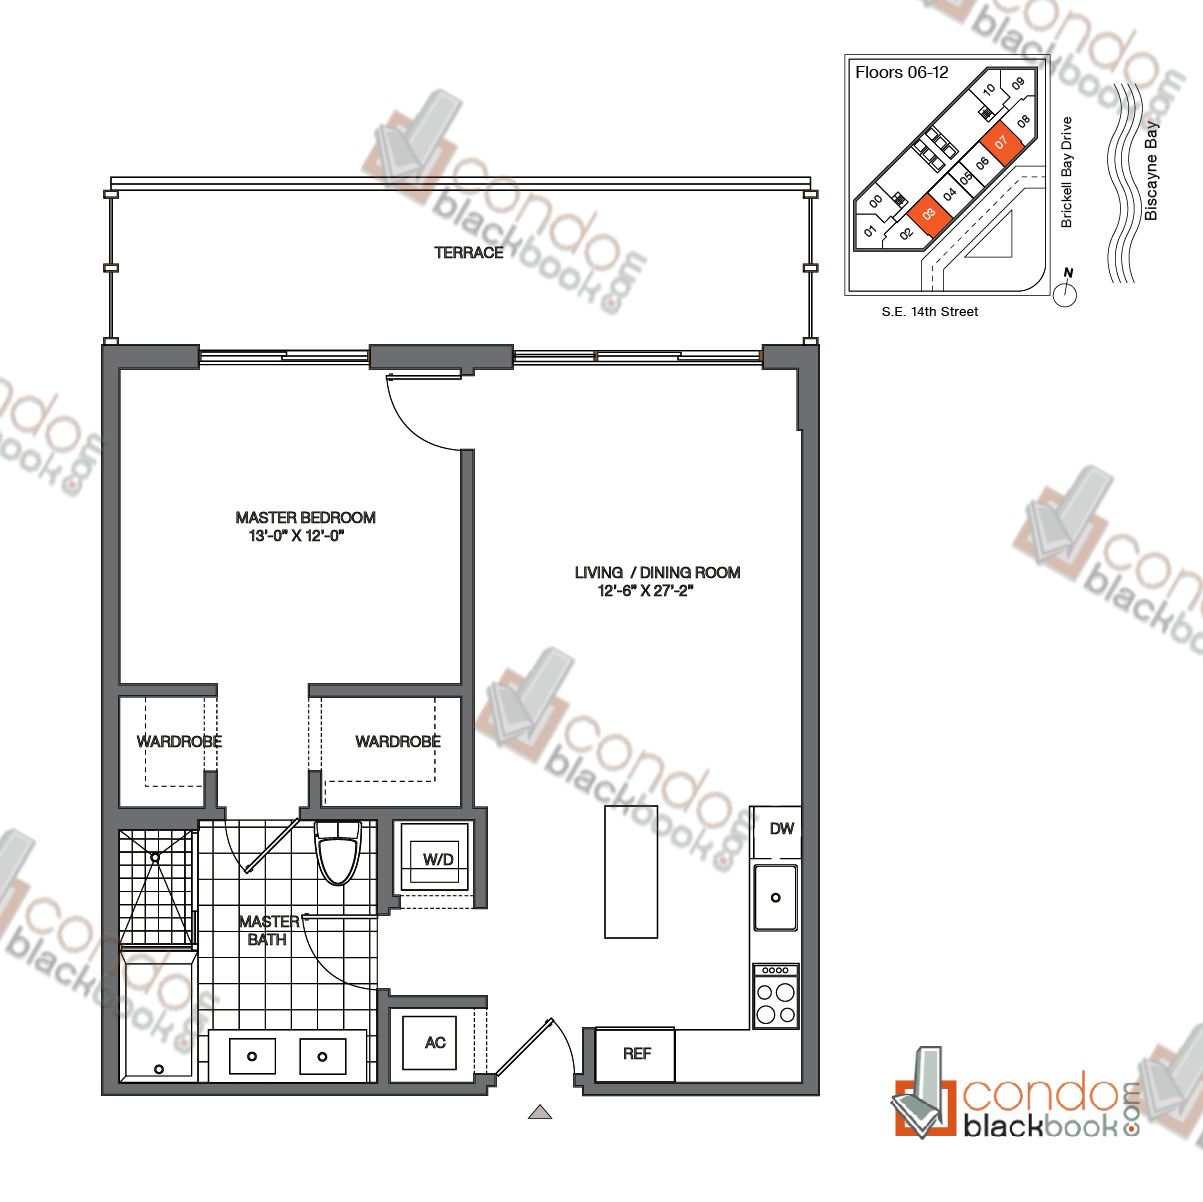 Floor plan for Brickell House Brickell Miami, model A6_6-12, line 03, 07, 1/1 bedrooms, 792 sq ft